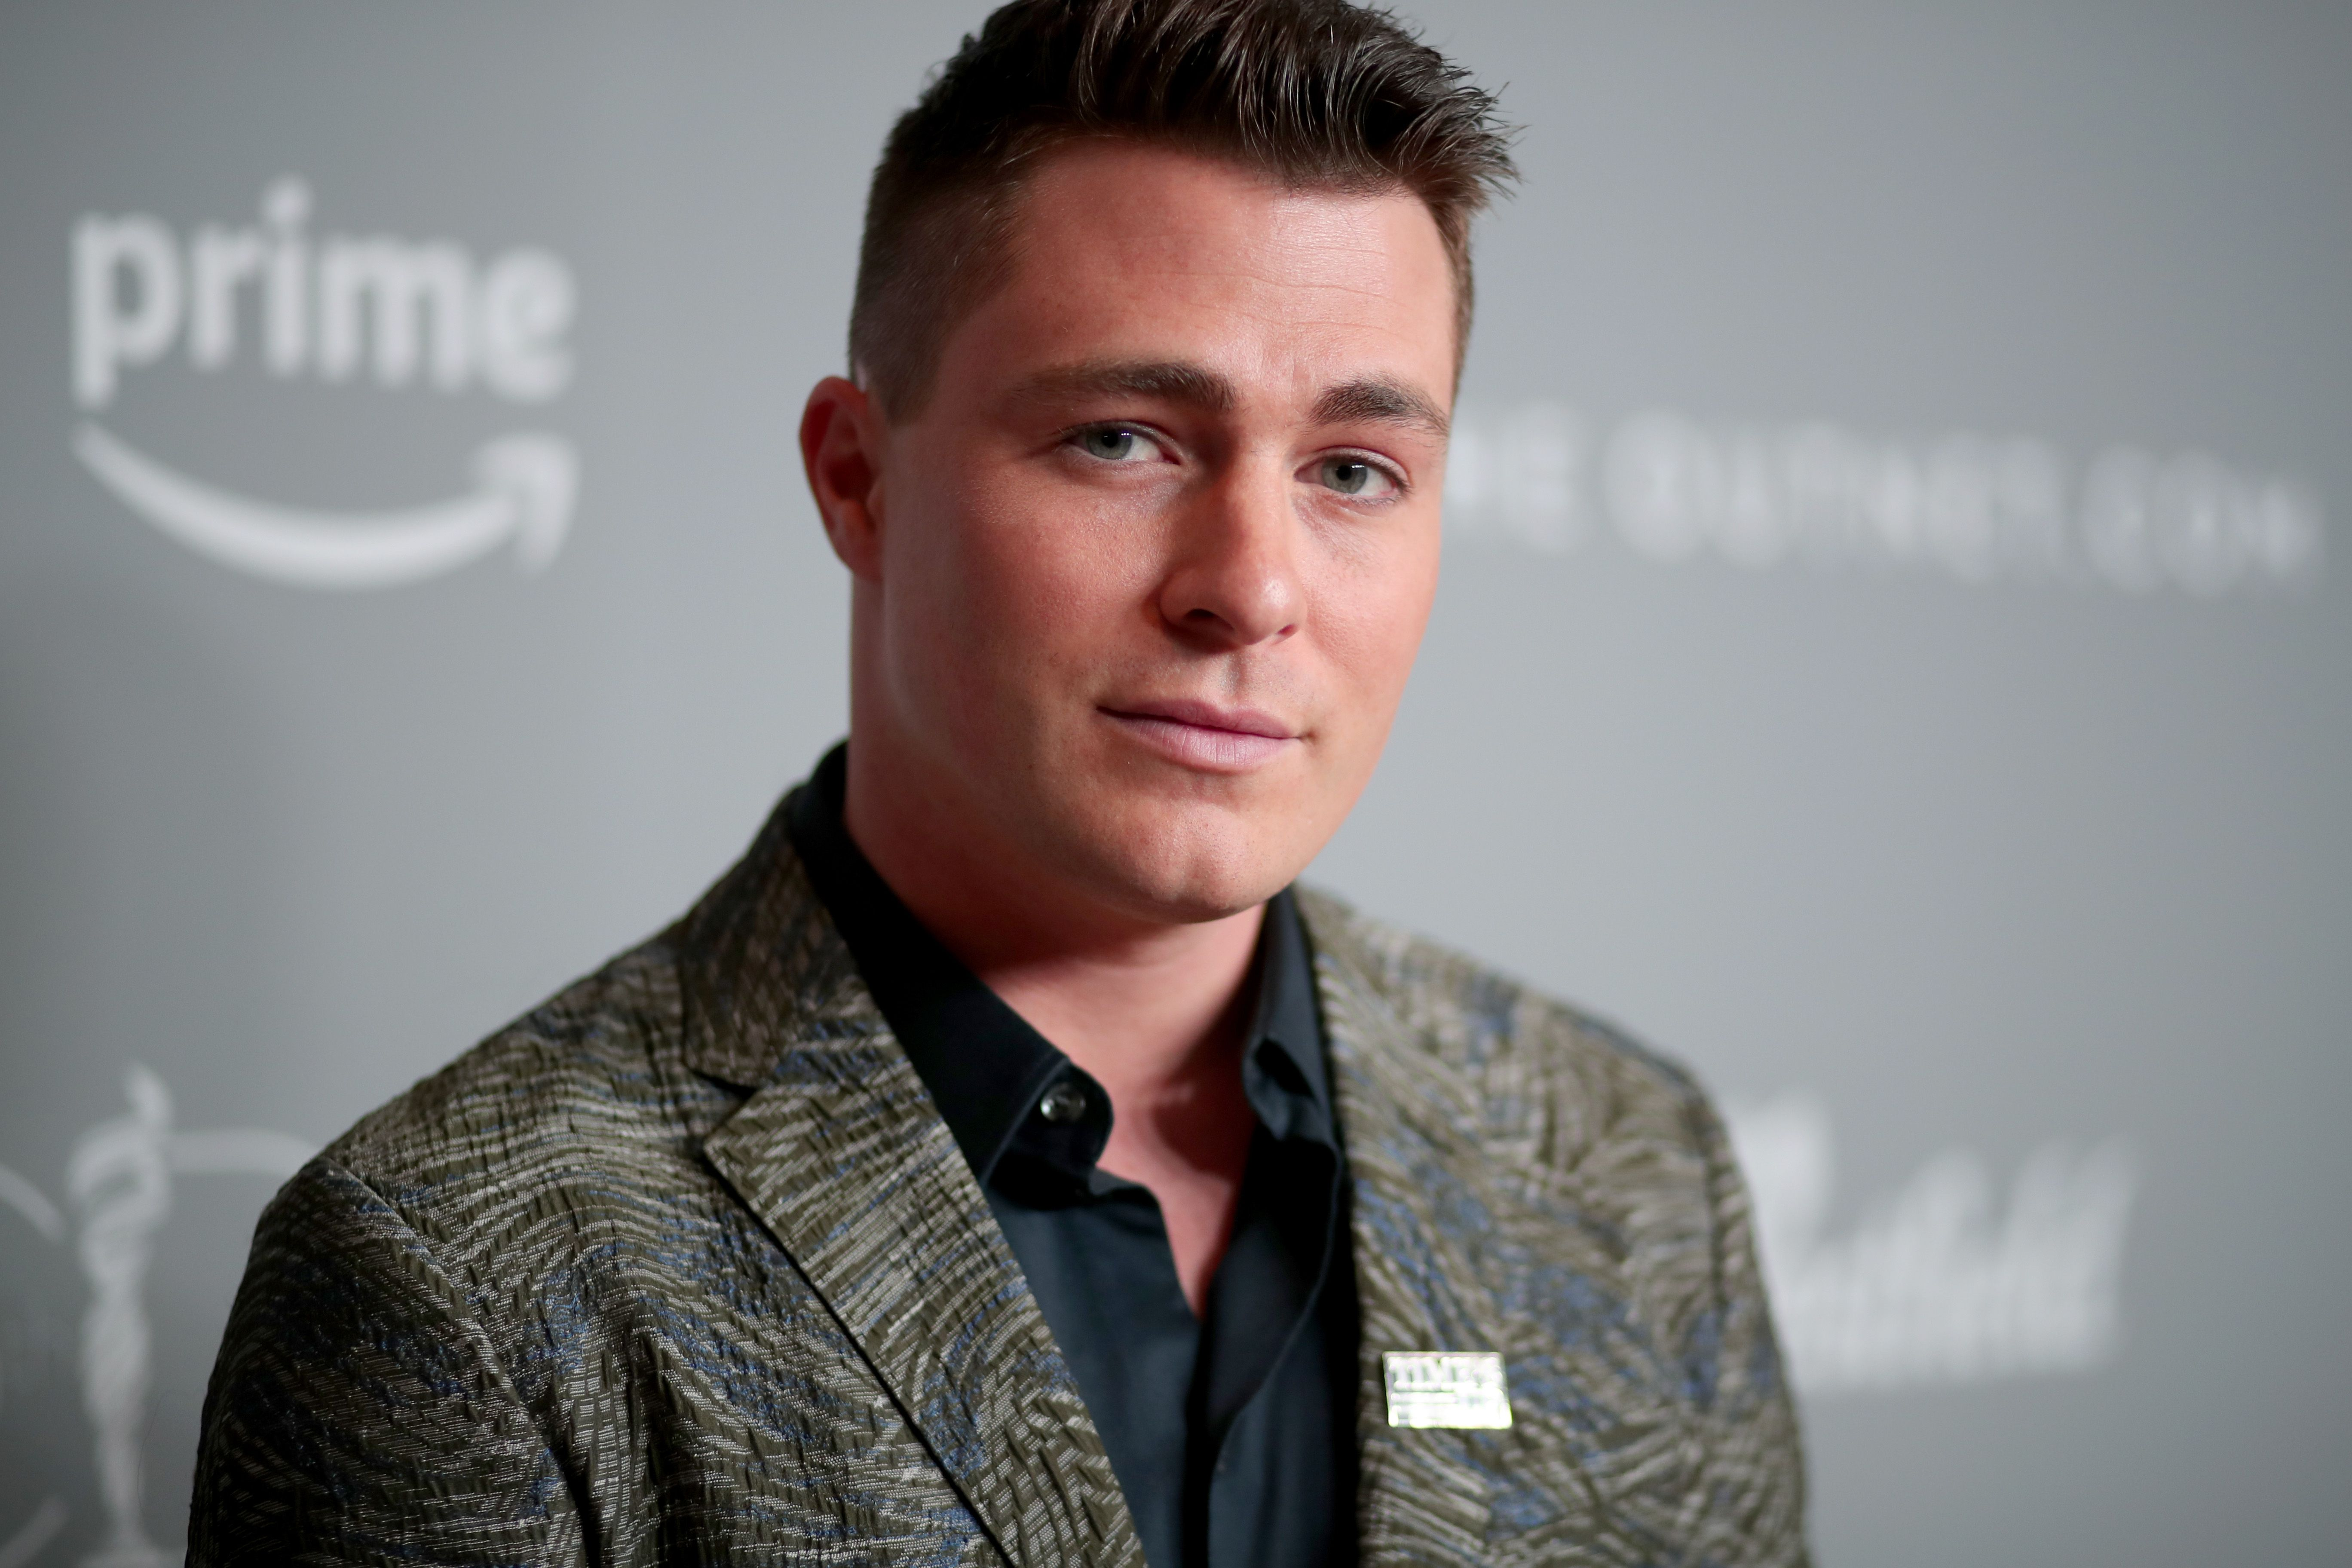 Colton Haynes Shared a Throwback Hospital Photo While Opening Up About Depression and Addiction